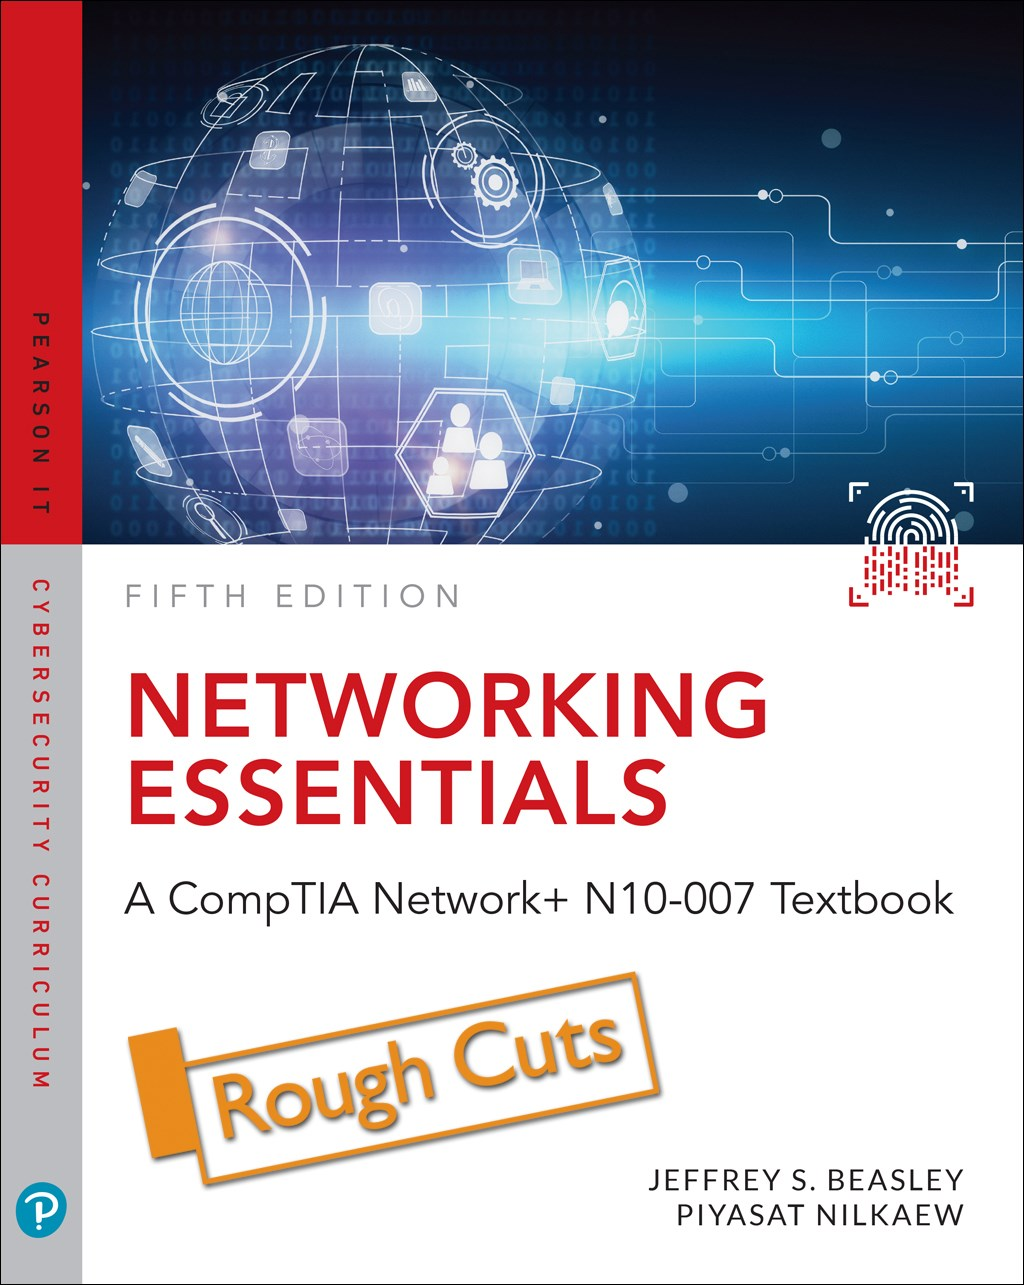 Networking Essentials: A CompTIA Network+ N10-007 Textbook, Rough Cuts, 5th Edition